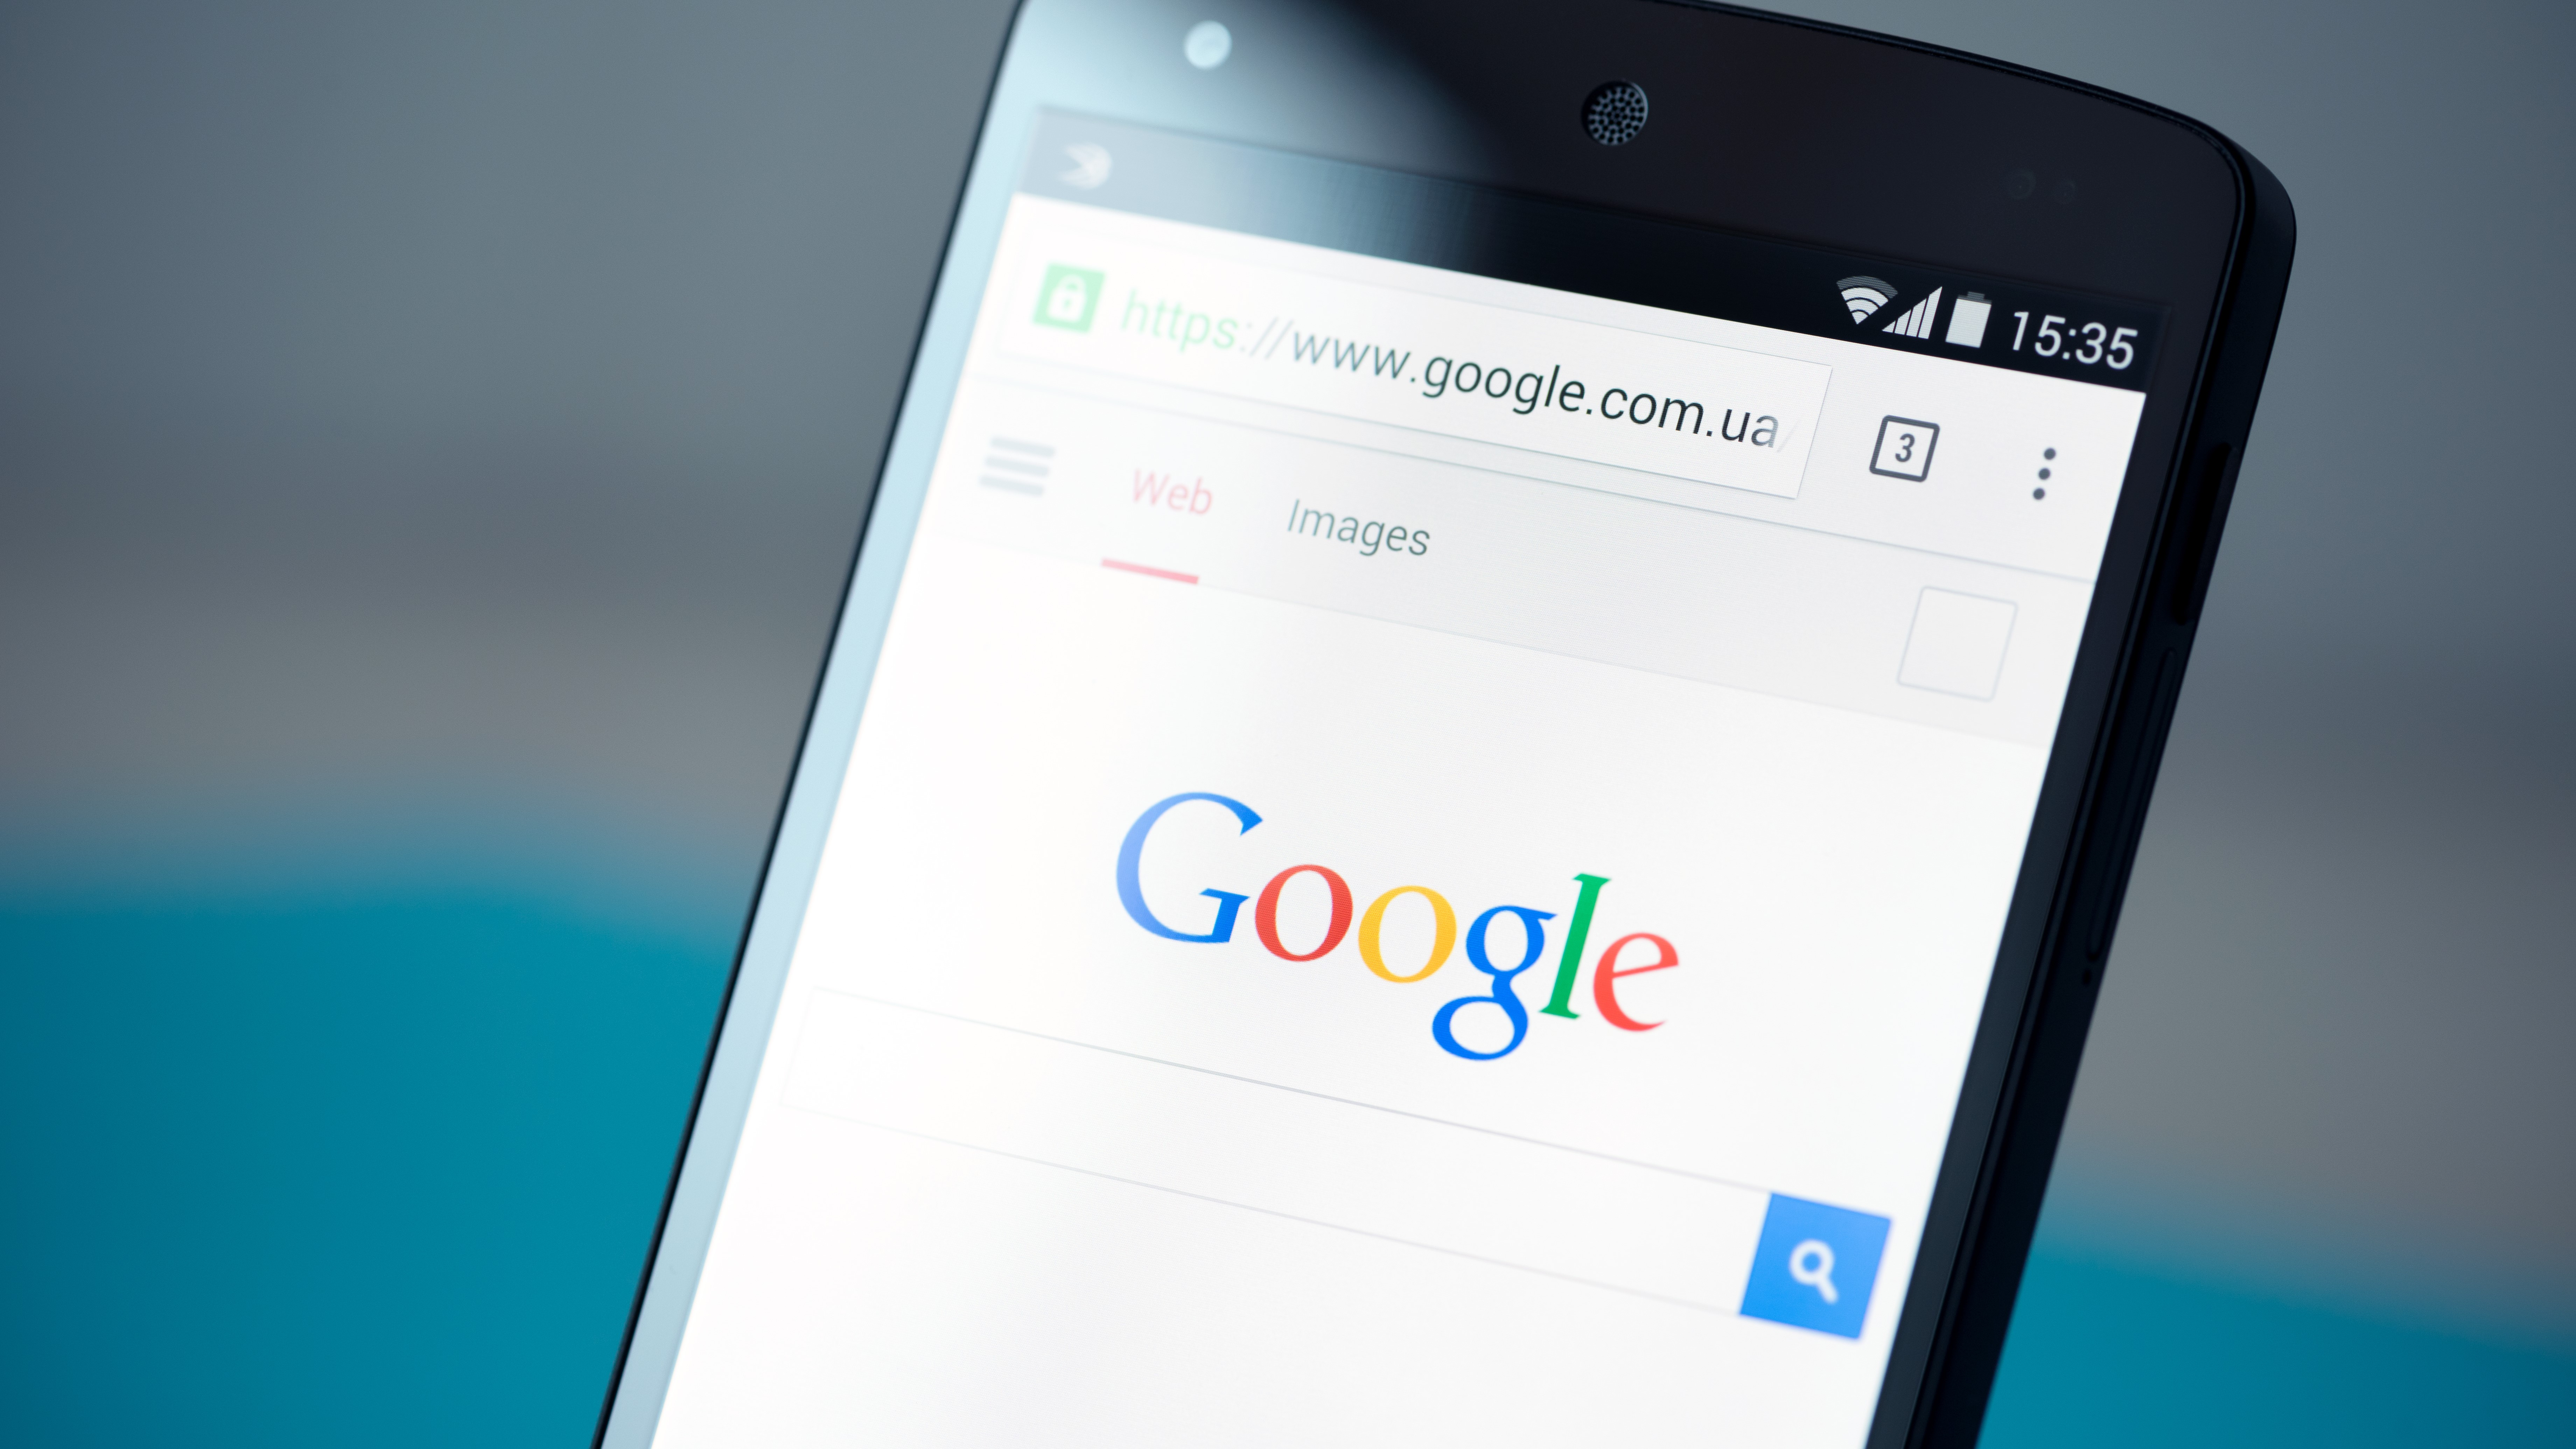 Your next Android phone will let you choose from these non-Google search engines